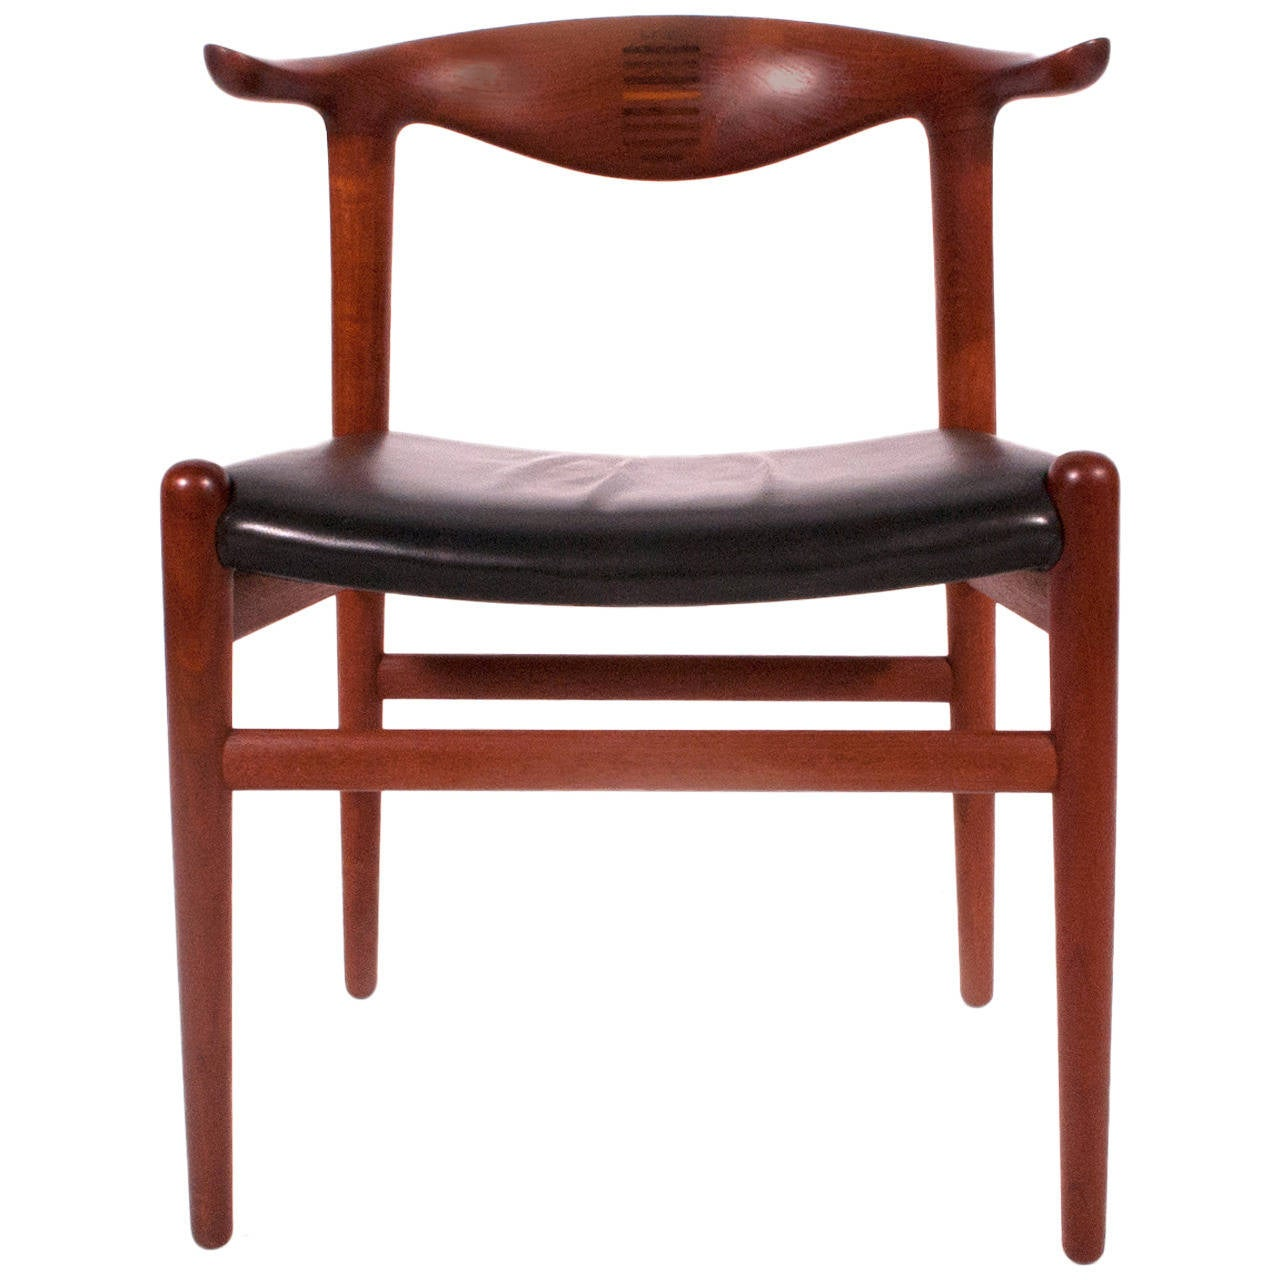 Johannes Hansen Chairs 18 For Sale at 1stdibs